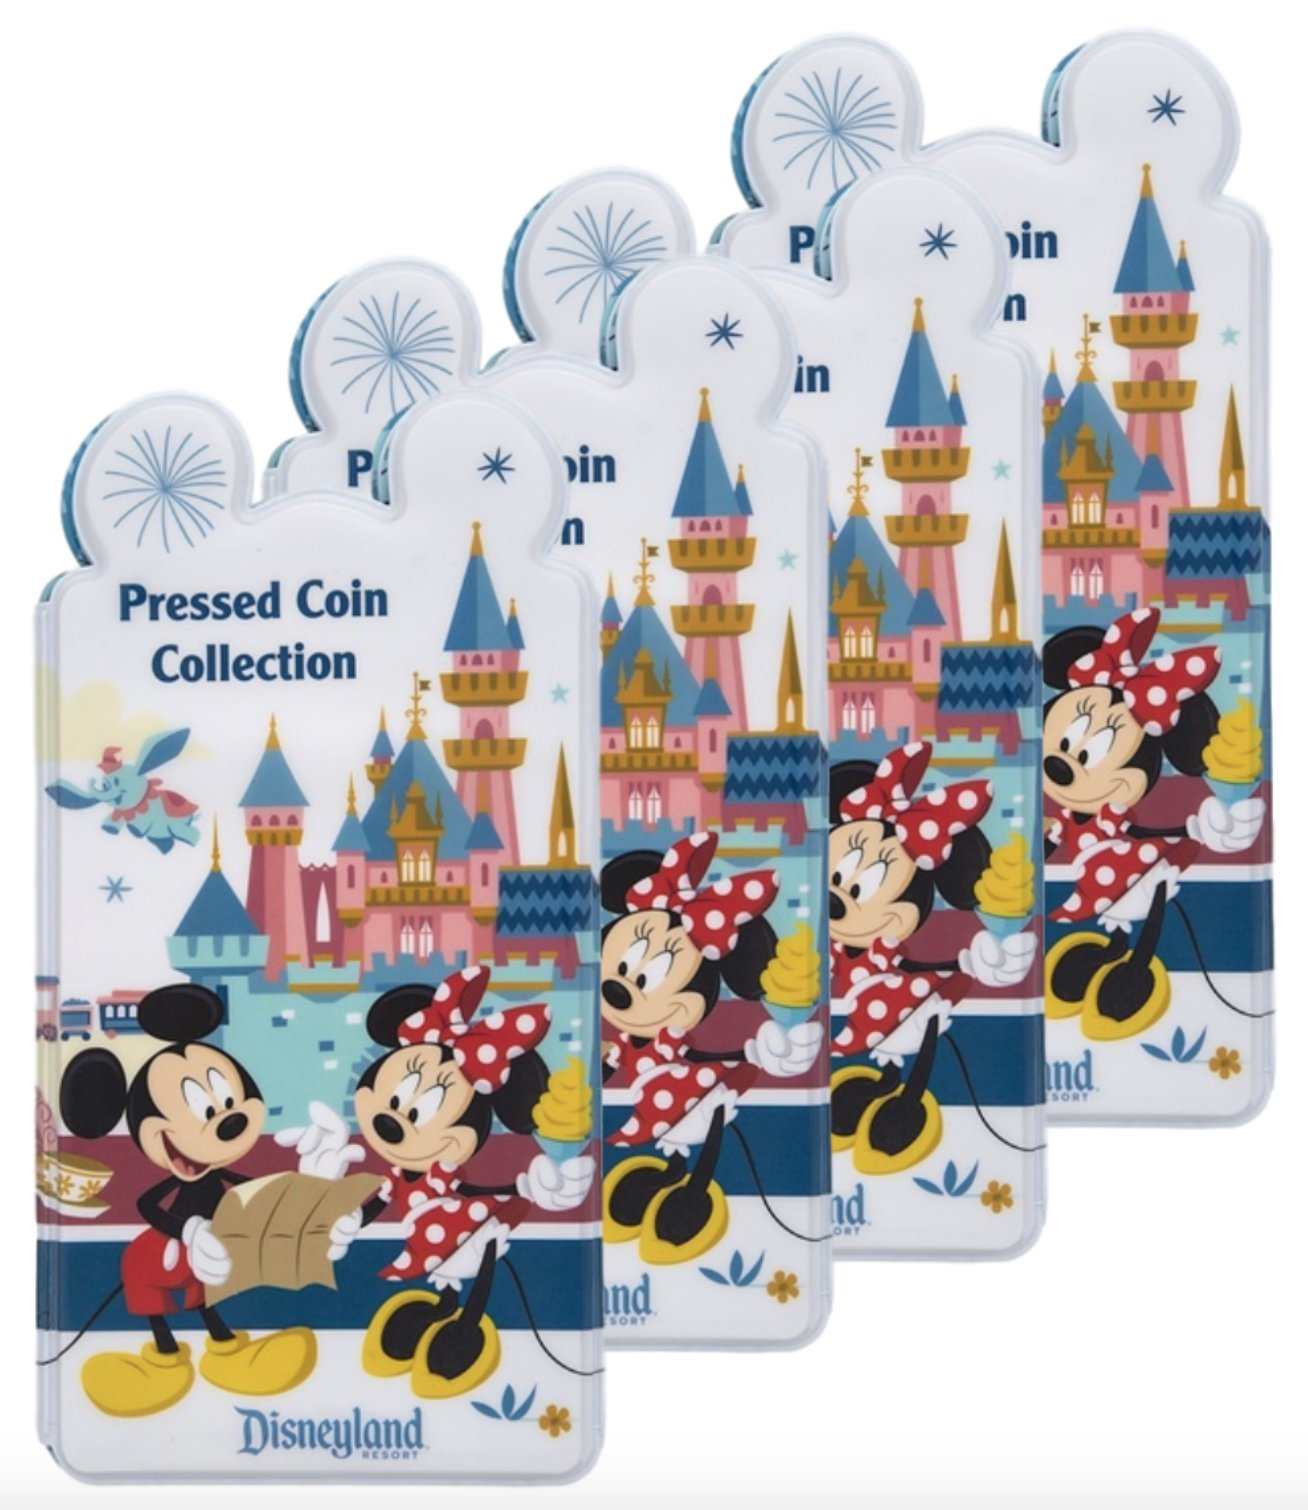 Mickey Mouse and Friends Pressed Coin Collection Holder - Disneyland (4)